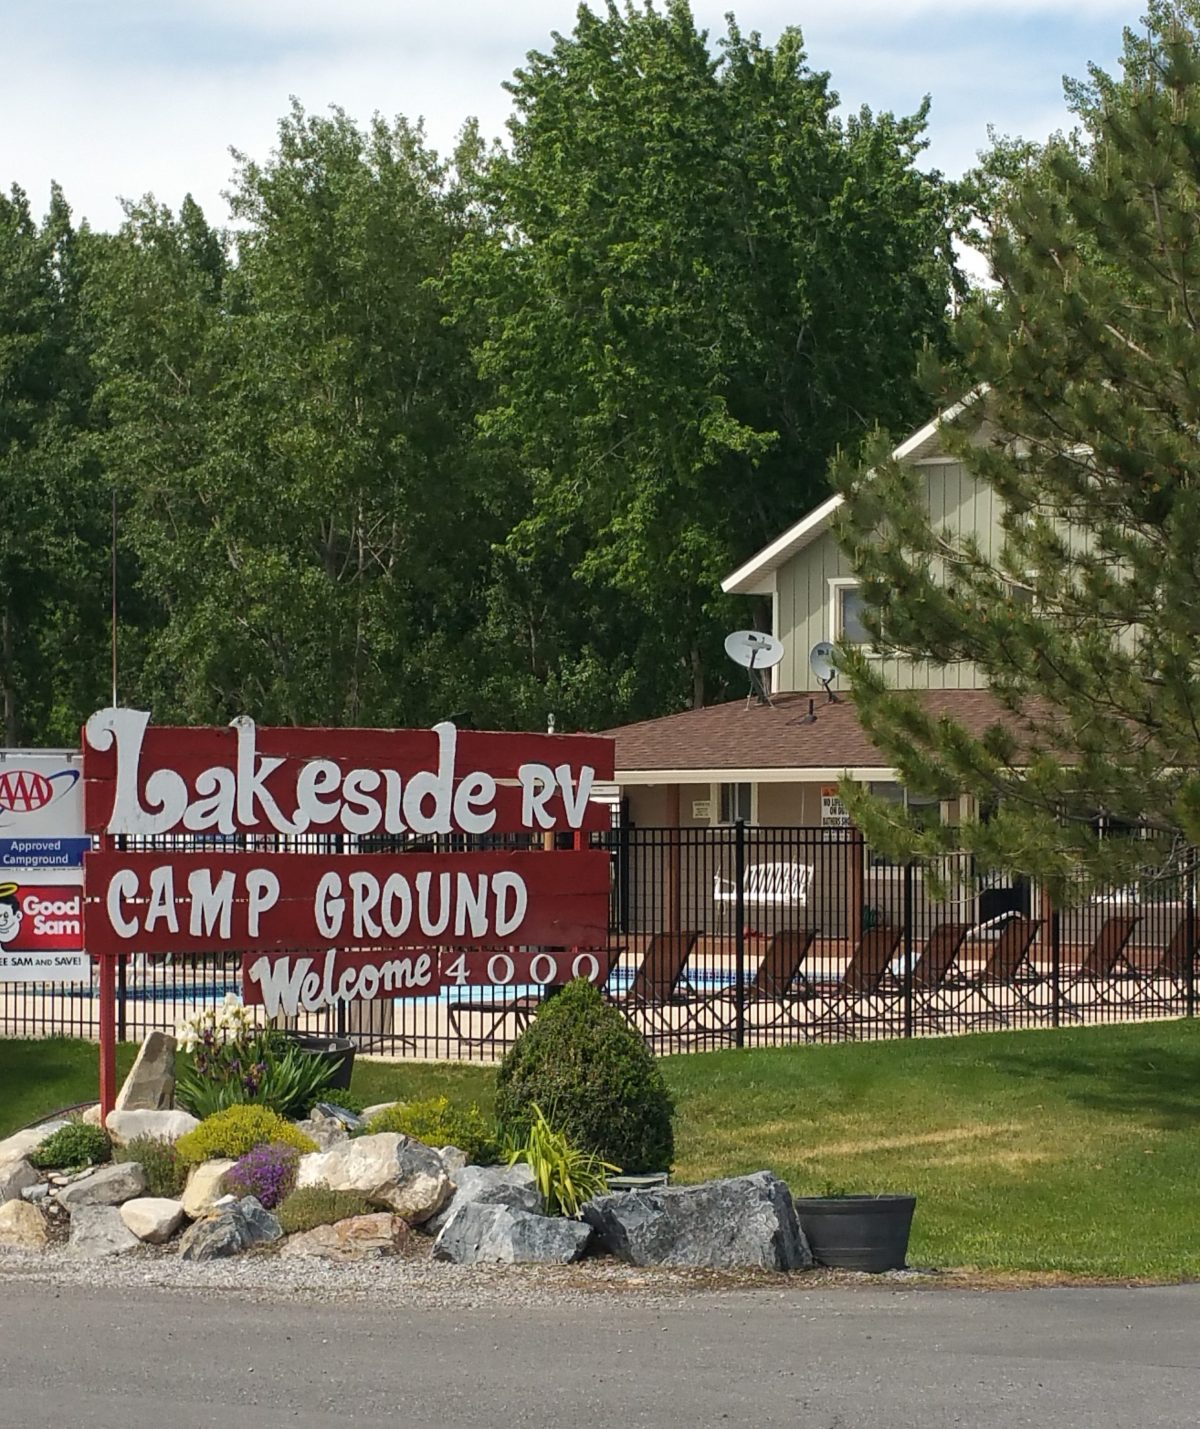 Lakeside RV Campground - entrance sign